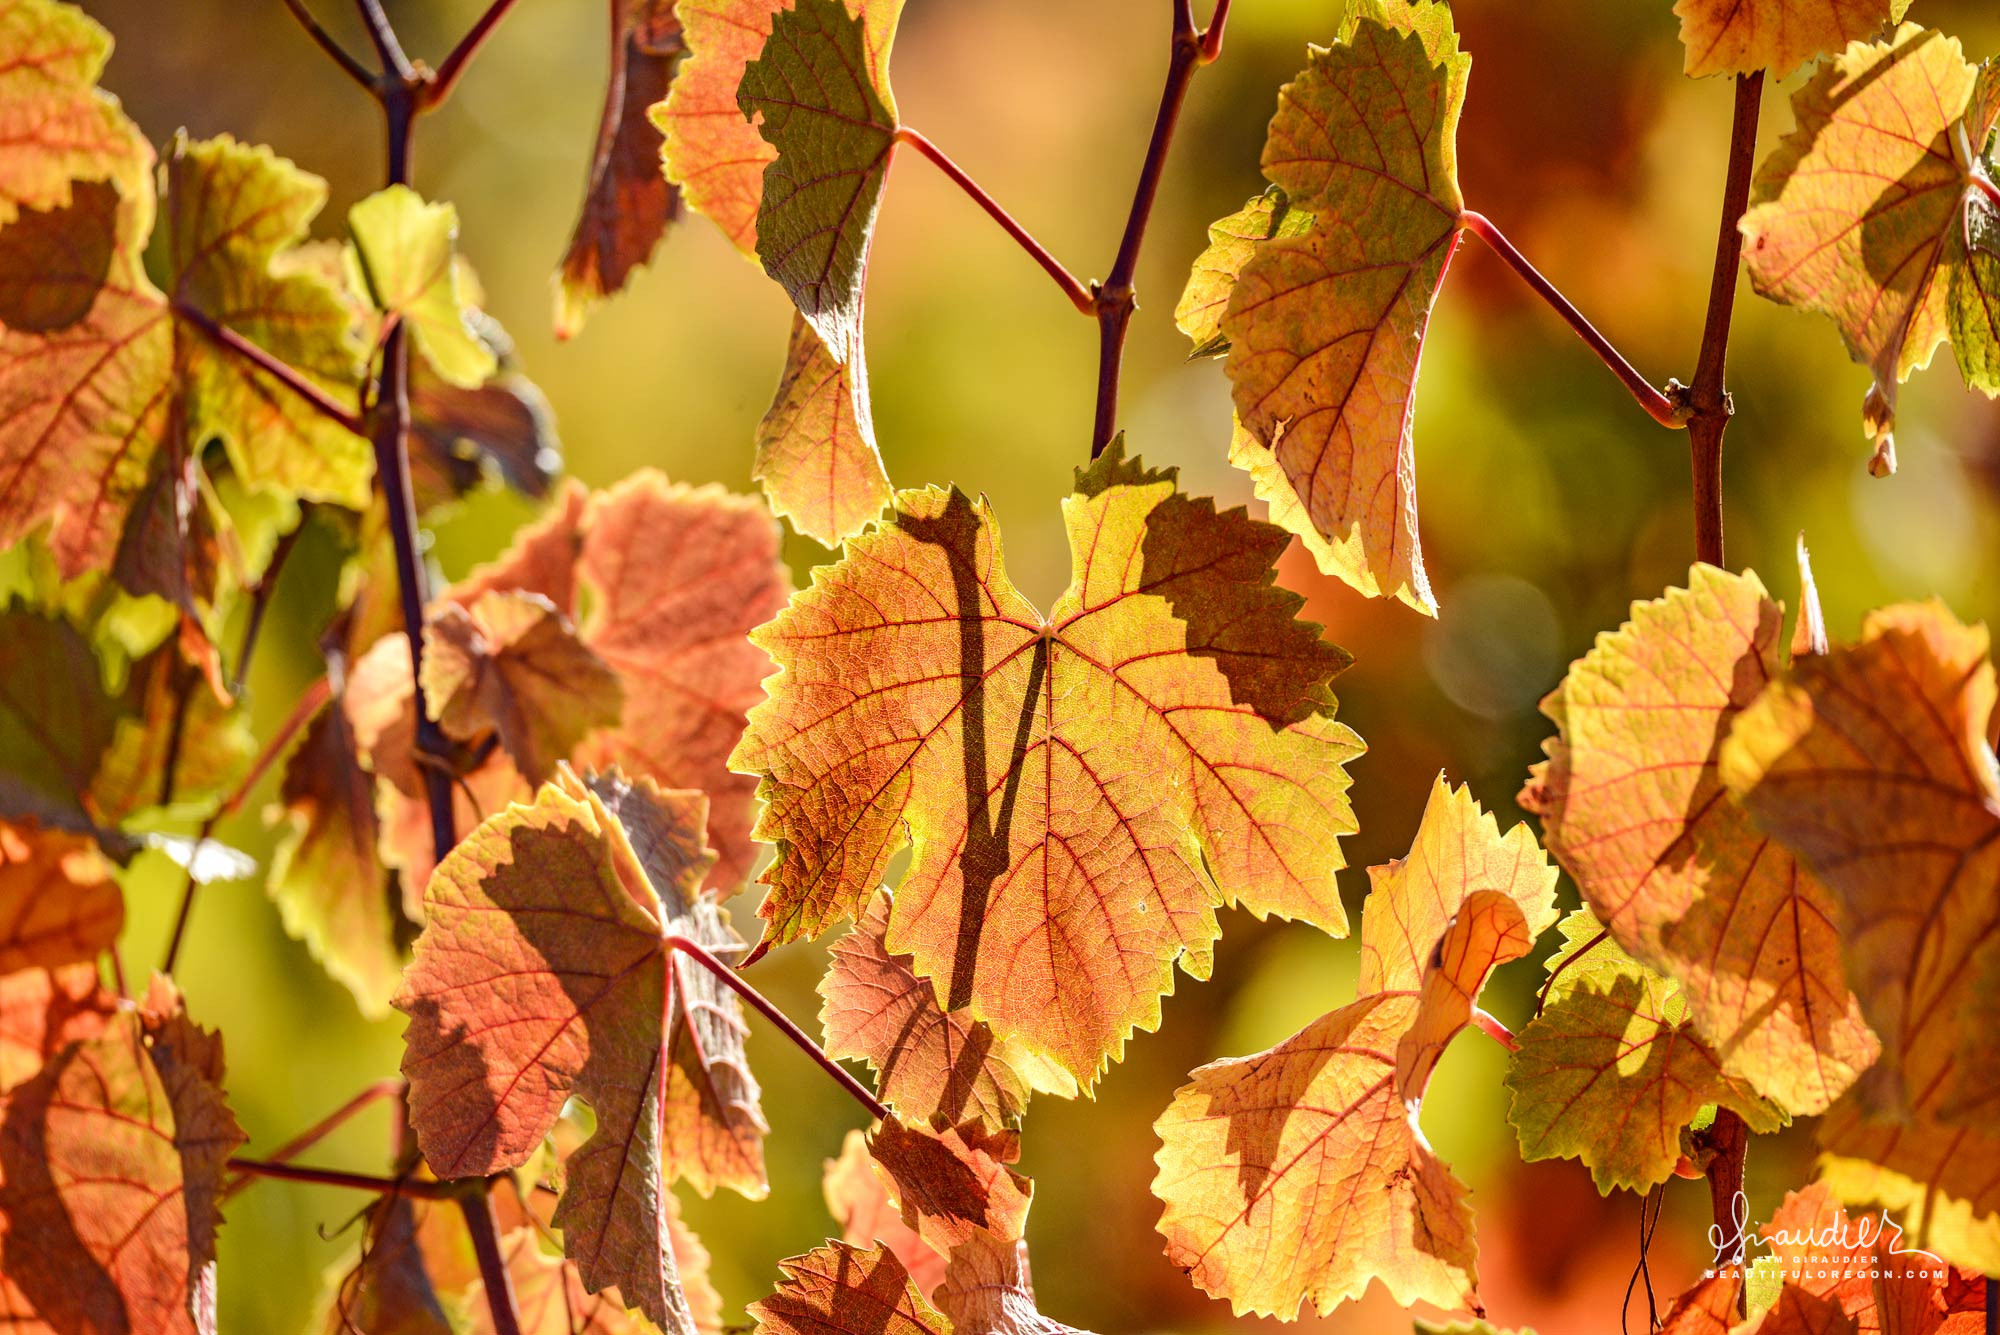 Pinot noir grape leaves take on color with the arrival of colder temperatures in October. Willamette Valley vineyards, Linn County, Oregon.